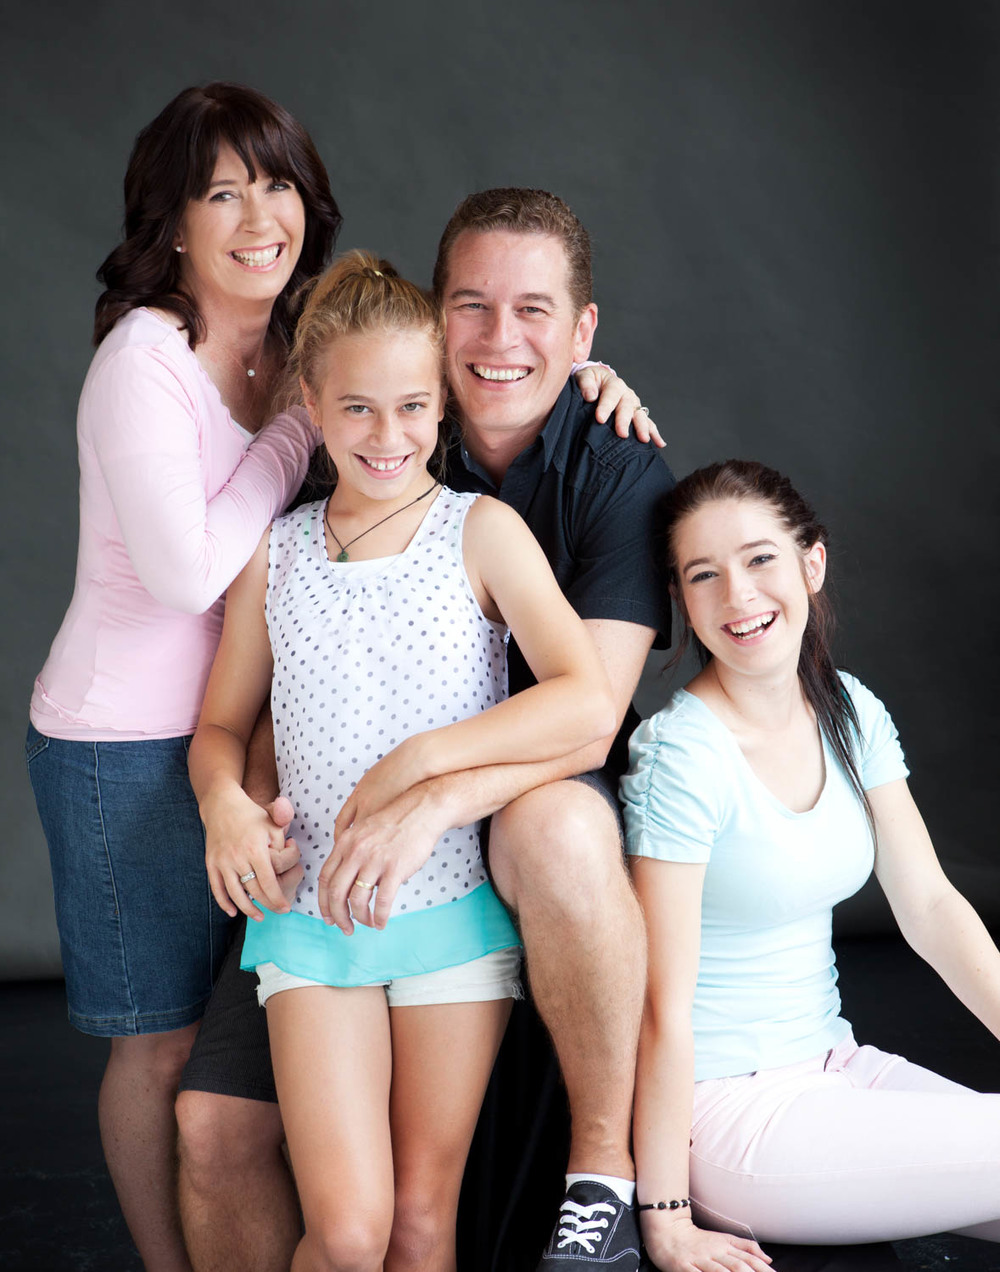 Family_Photographer_Auckland_16784_6495.jpg